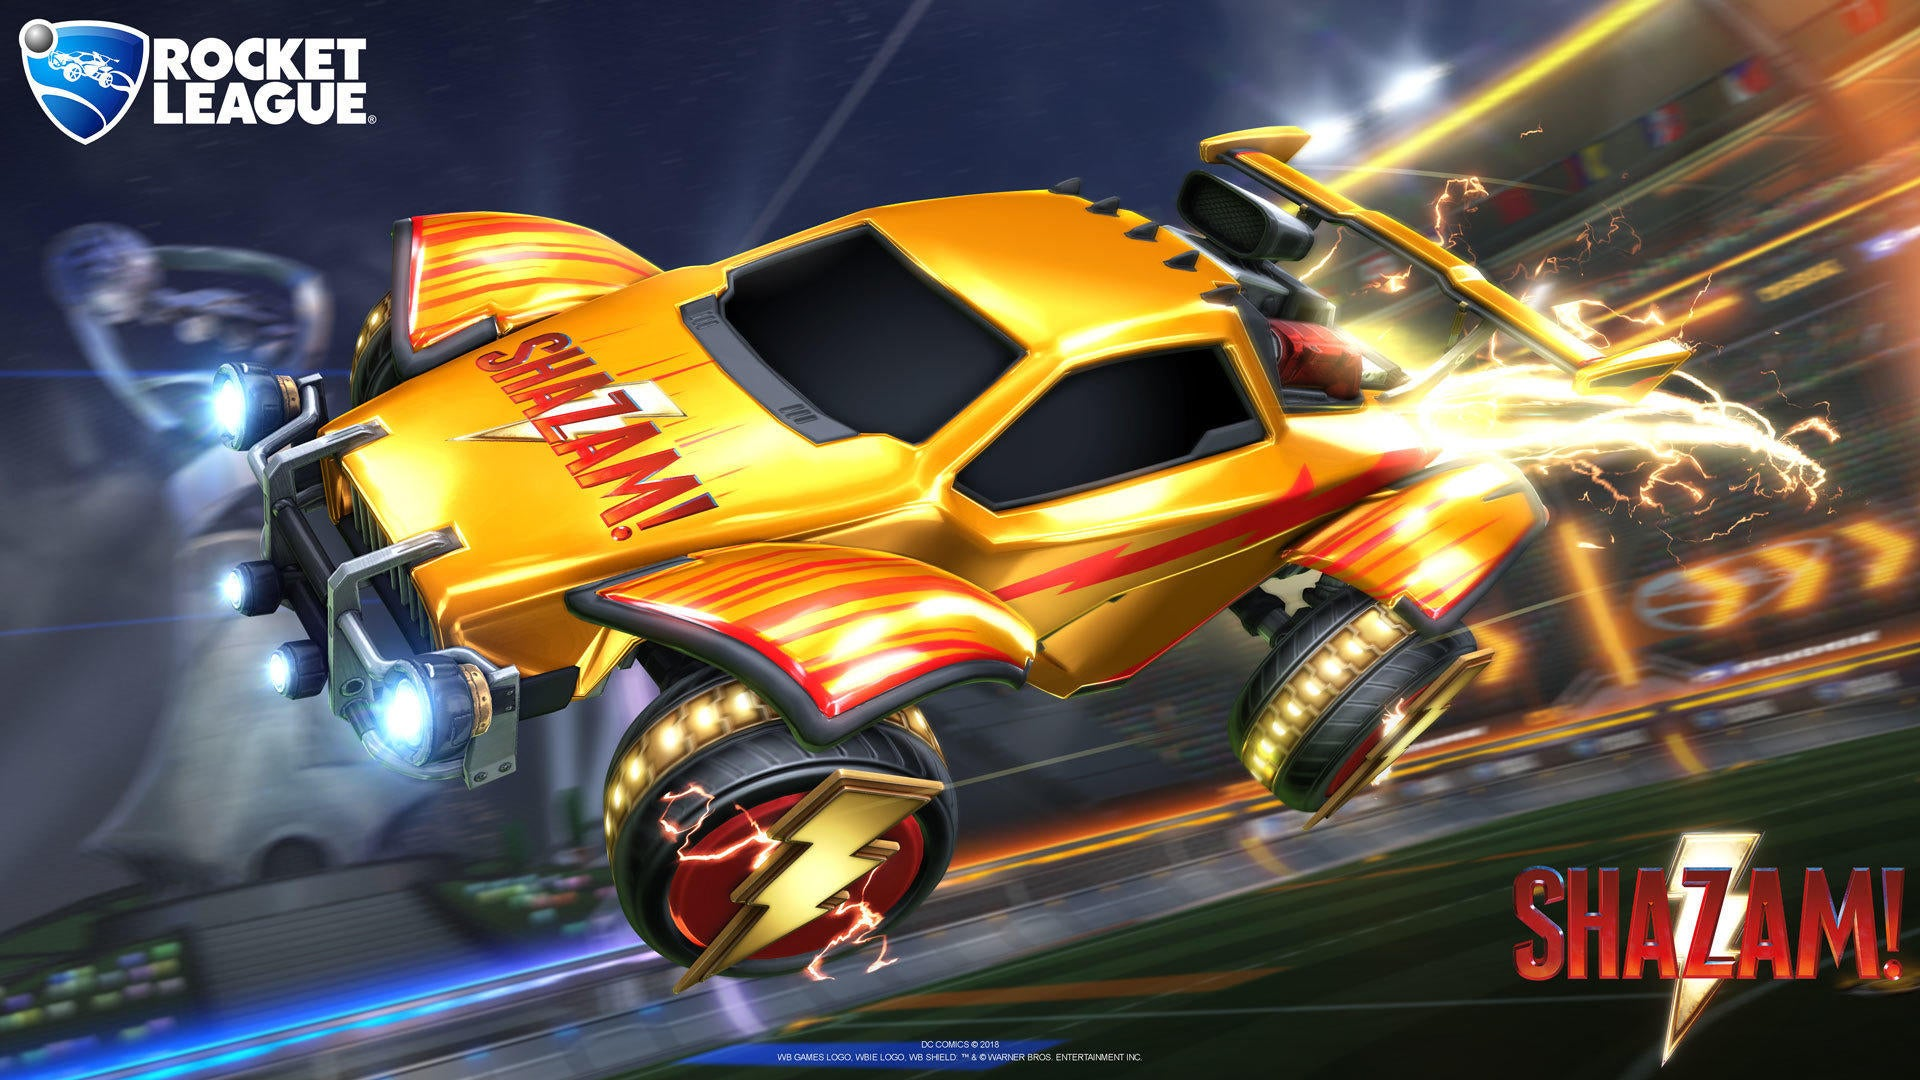 Shazam Items Soar Into Rocket League  Image